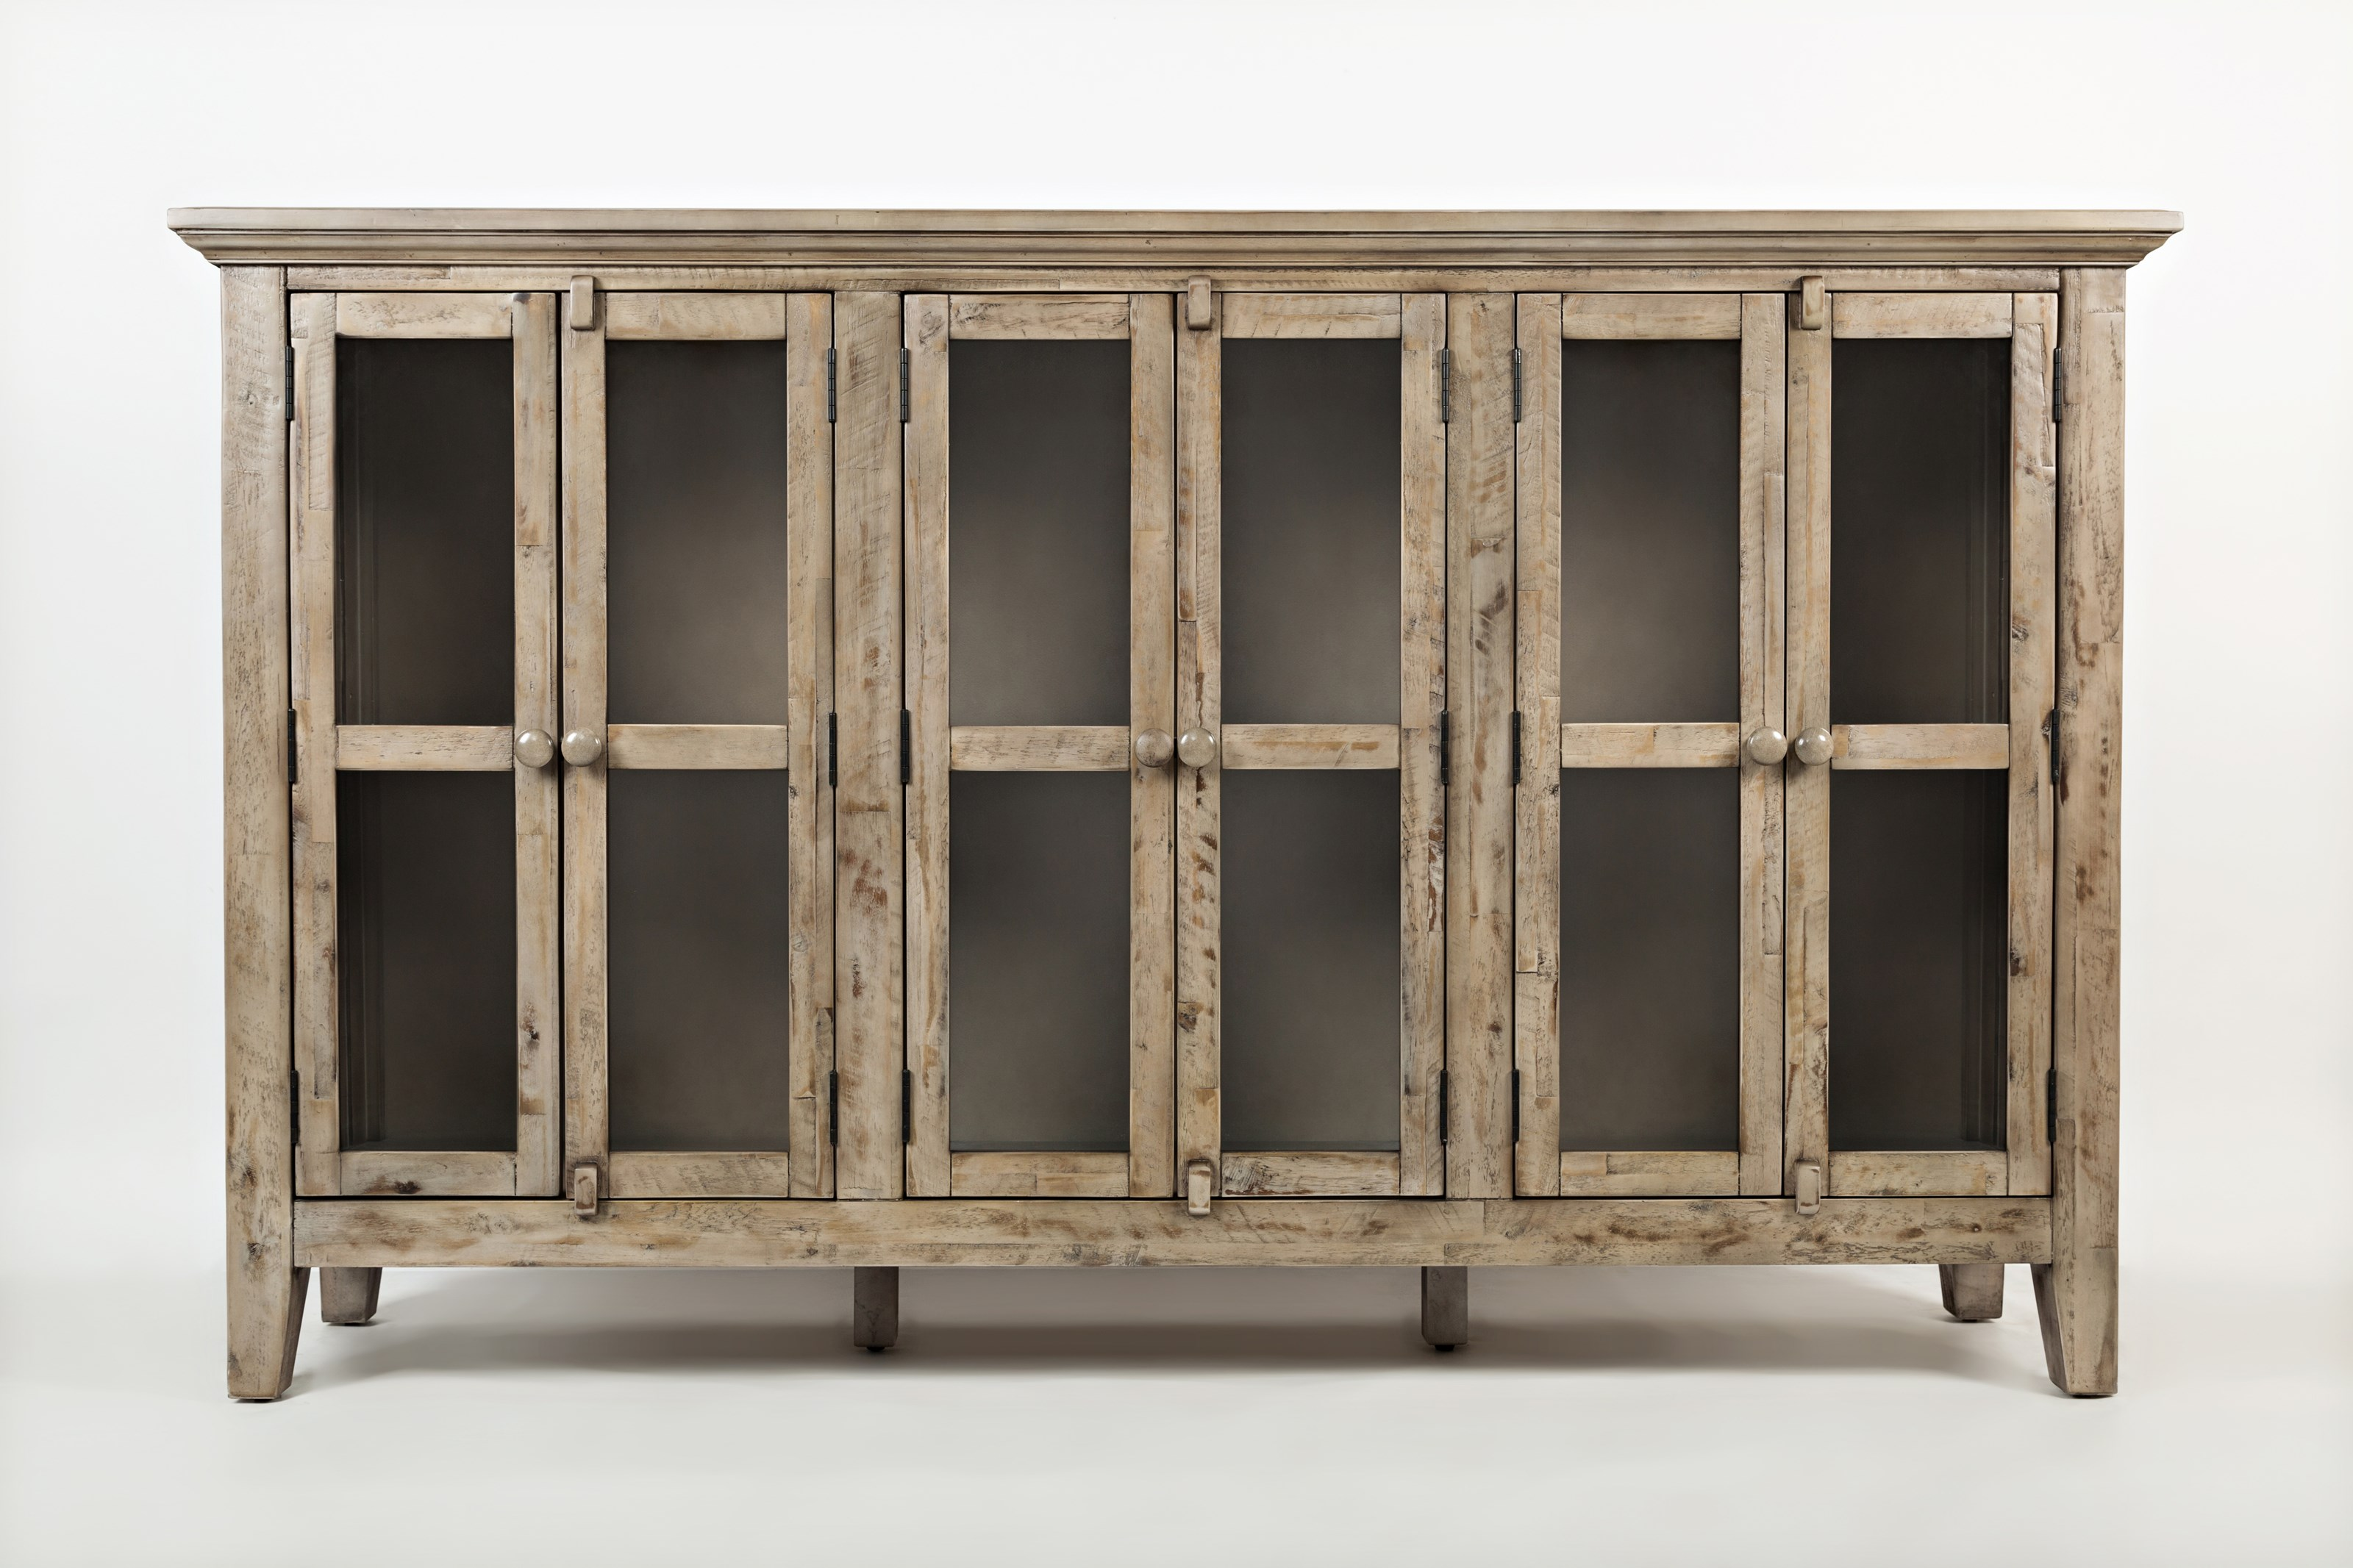 "Rustic Shores 70"" Accent Cabinet by Jofran at Jofran"